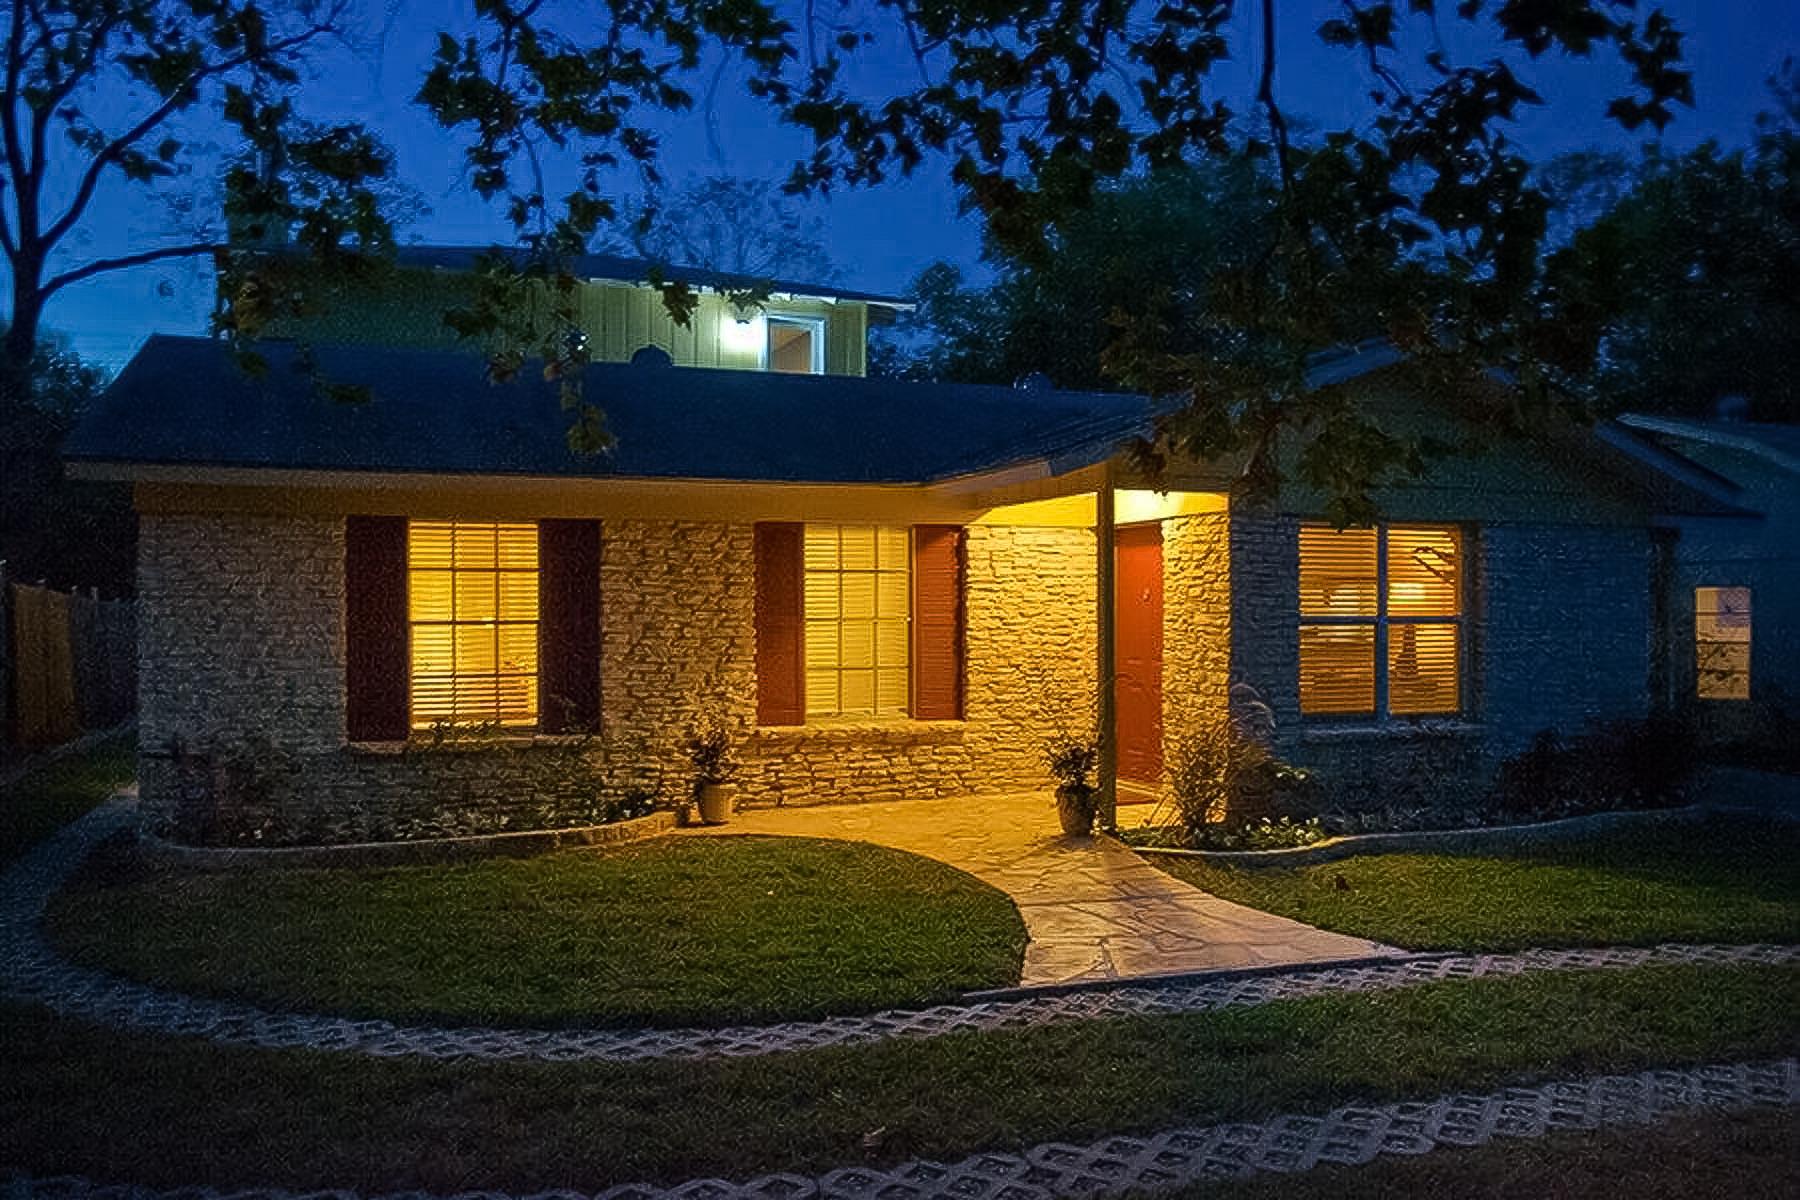 Other Residential for Rent at Unique Remodel in Sherwood Oaks 2700 Friar Tuck Ln Austin, Texas 78704 United States